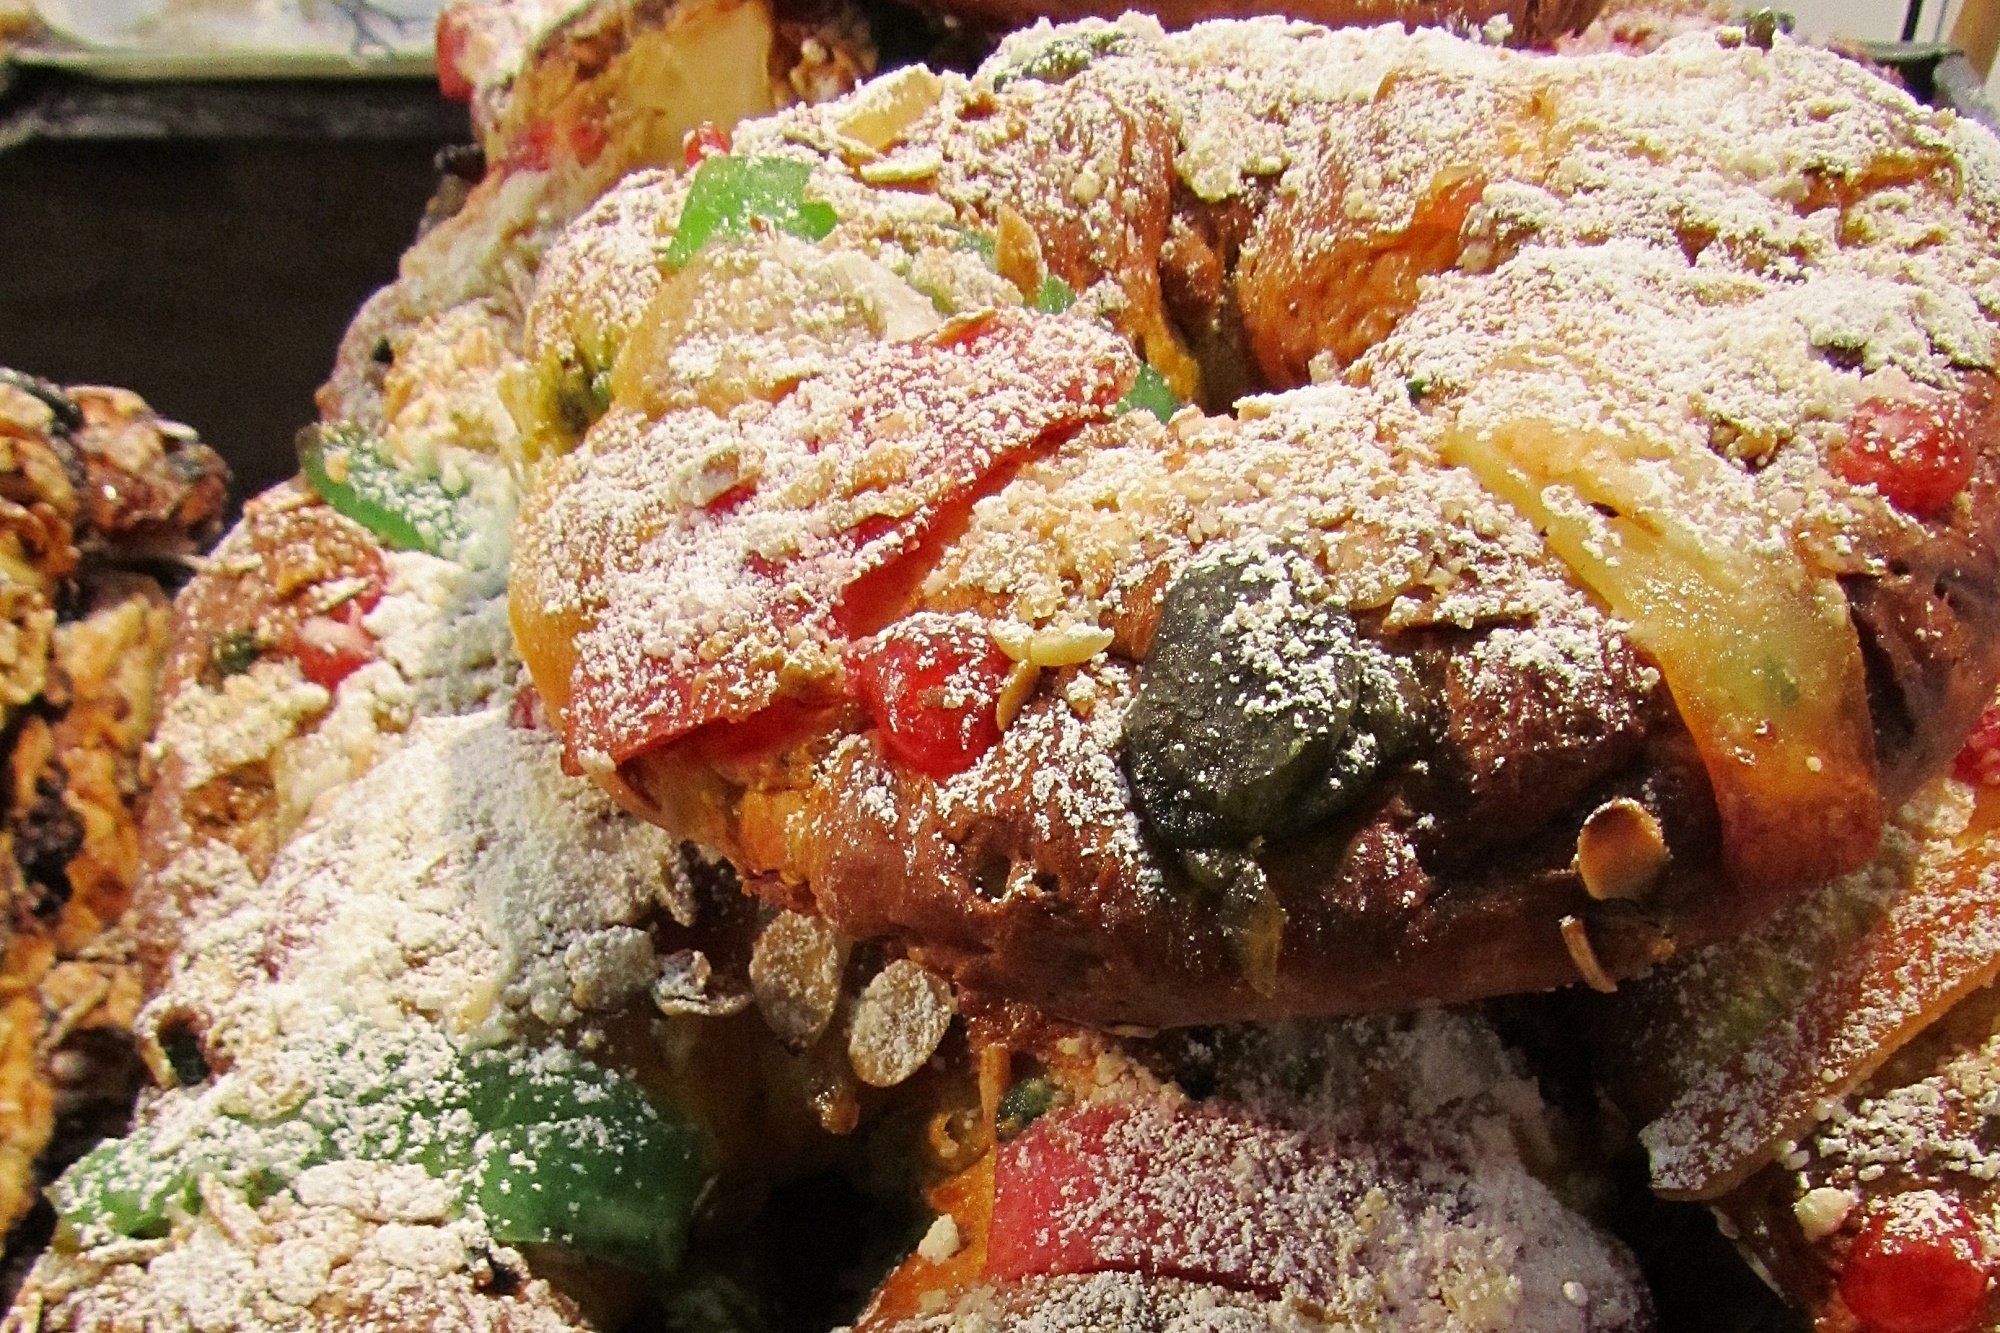 A Christmas king's cake, or Bolo Rei, in Portugal